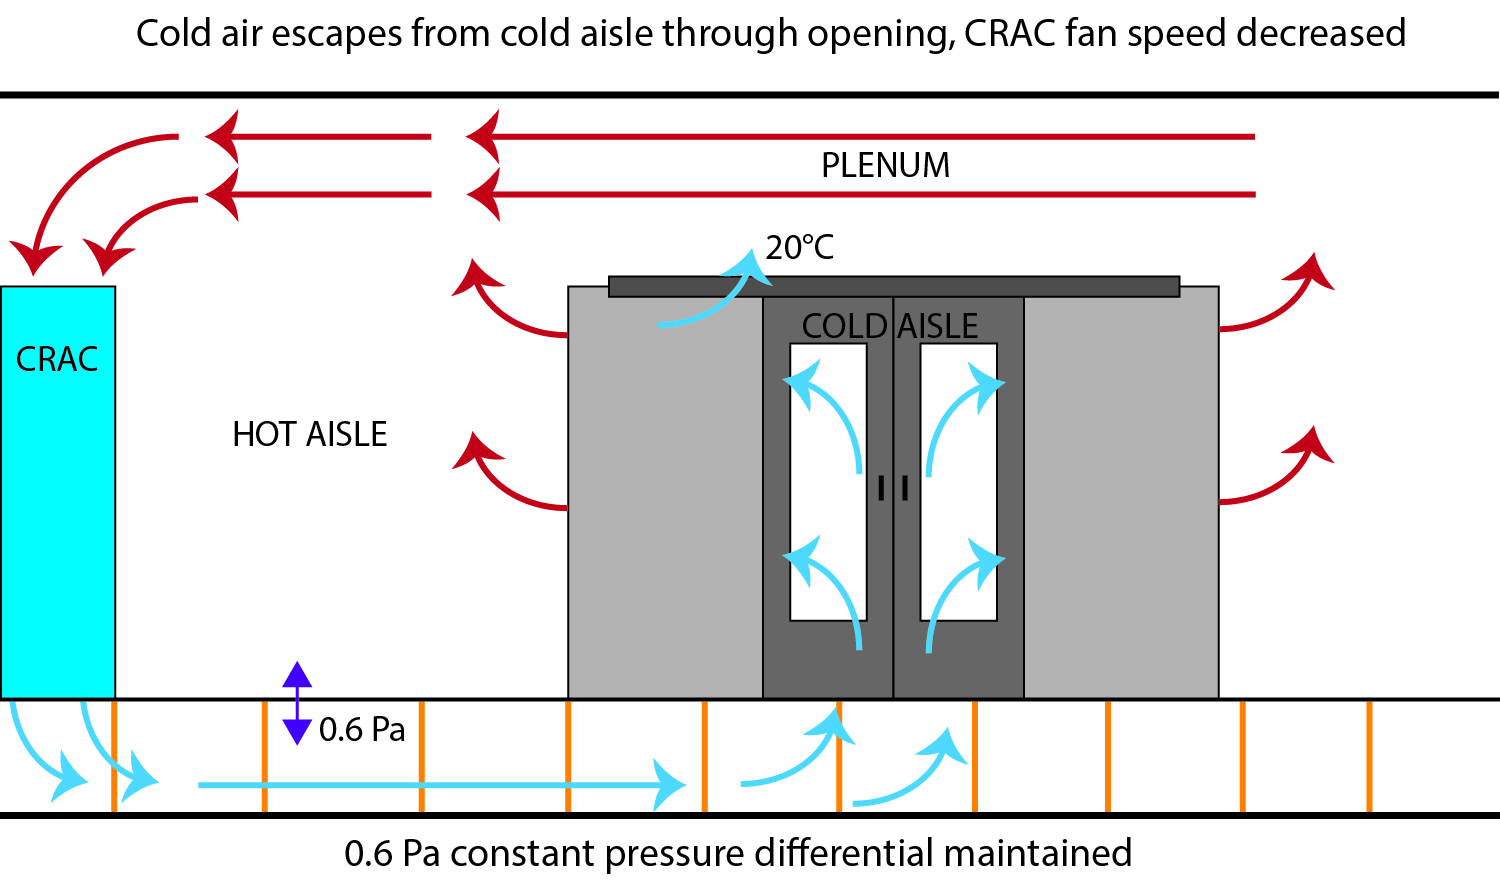 CRAC cooling decreased capacity based on temperature